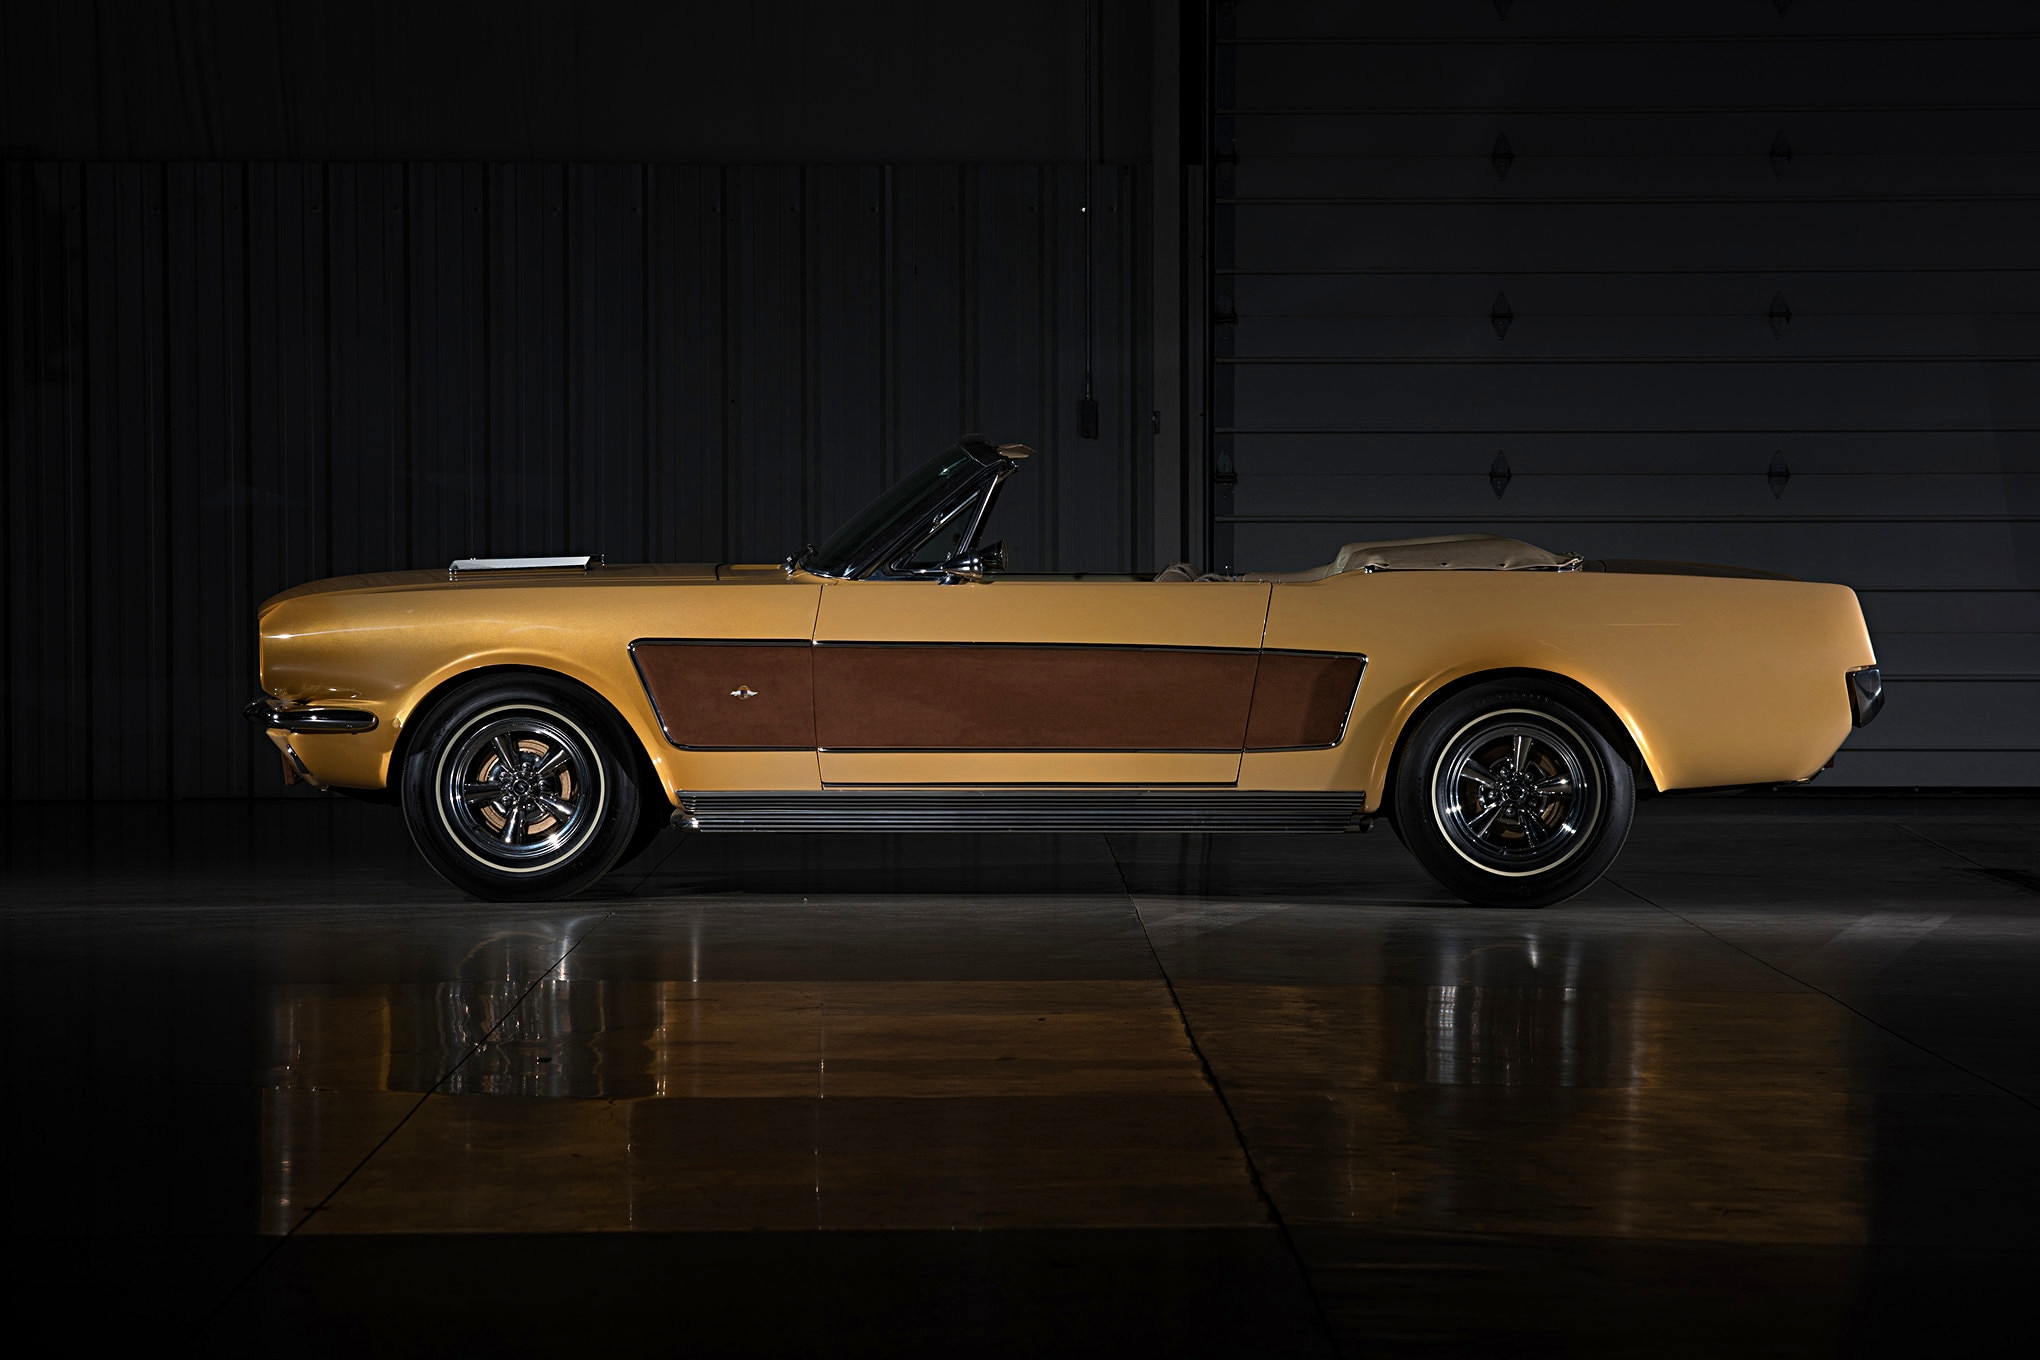 Sonny Cher Ford Mustang Side Brown